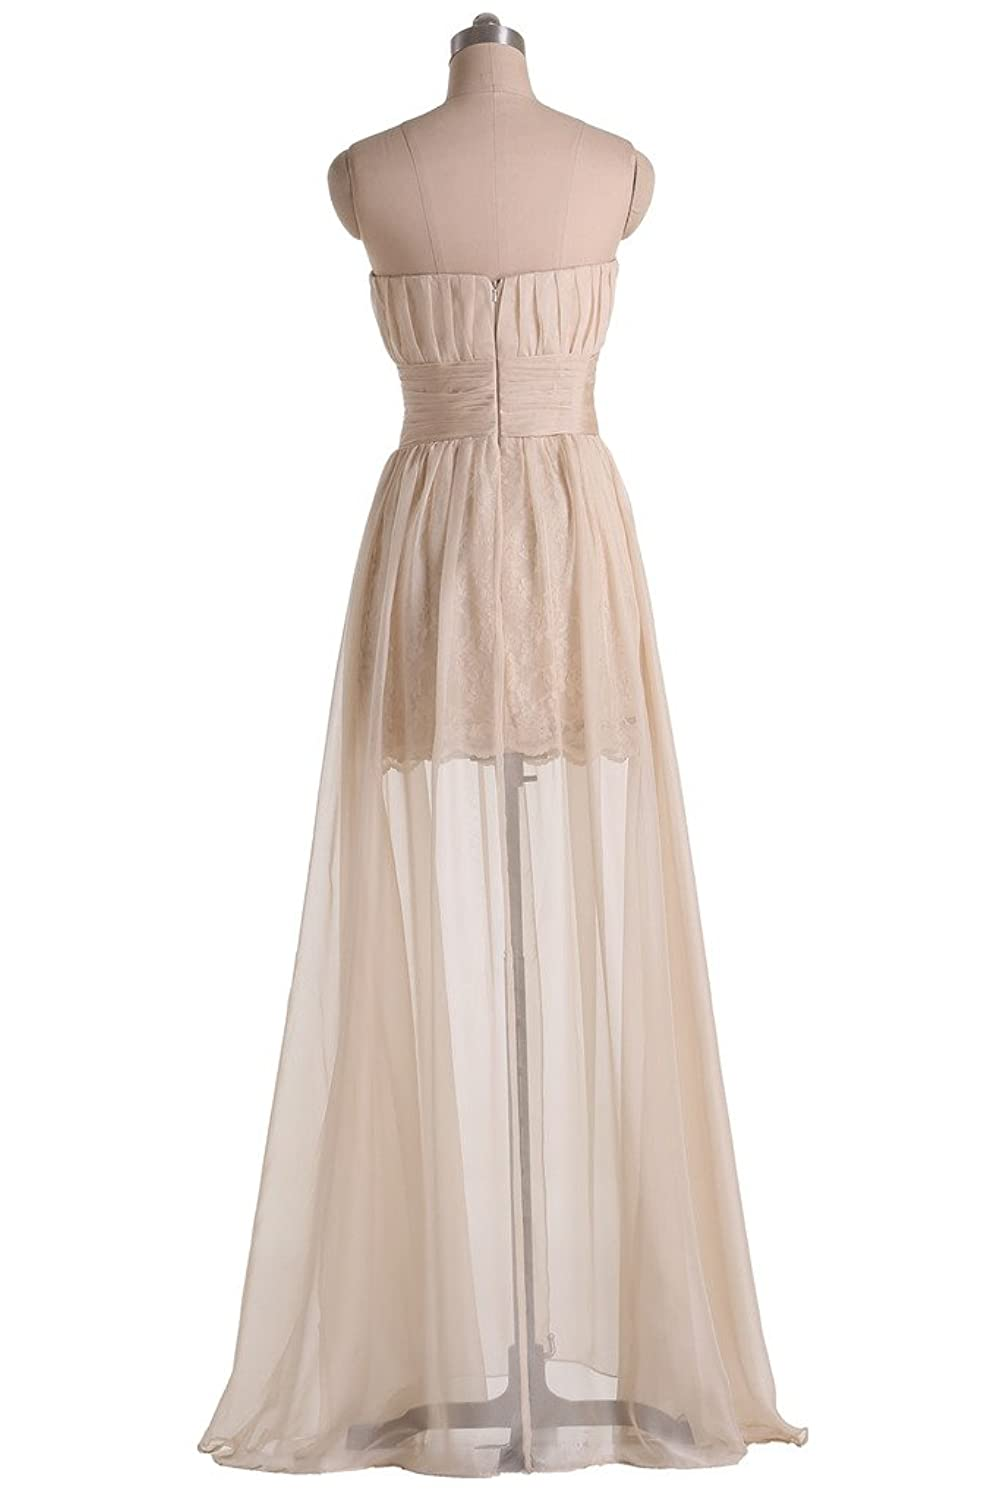 Sunvary Champagne Tulle Prom Pageant Gowns Elegant Stylish Evening Dresses